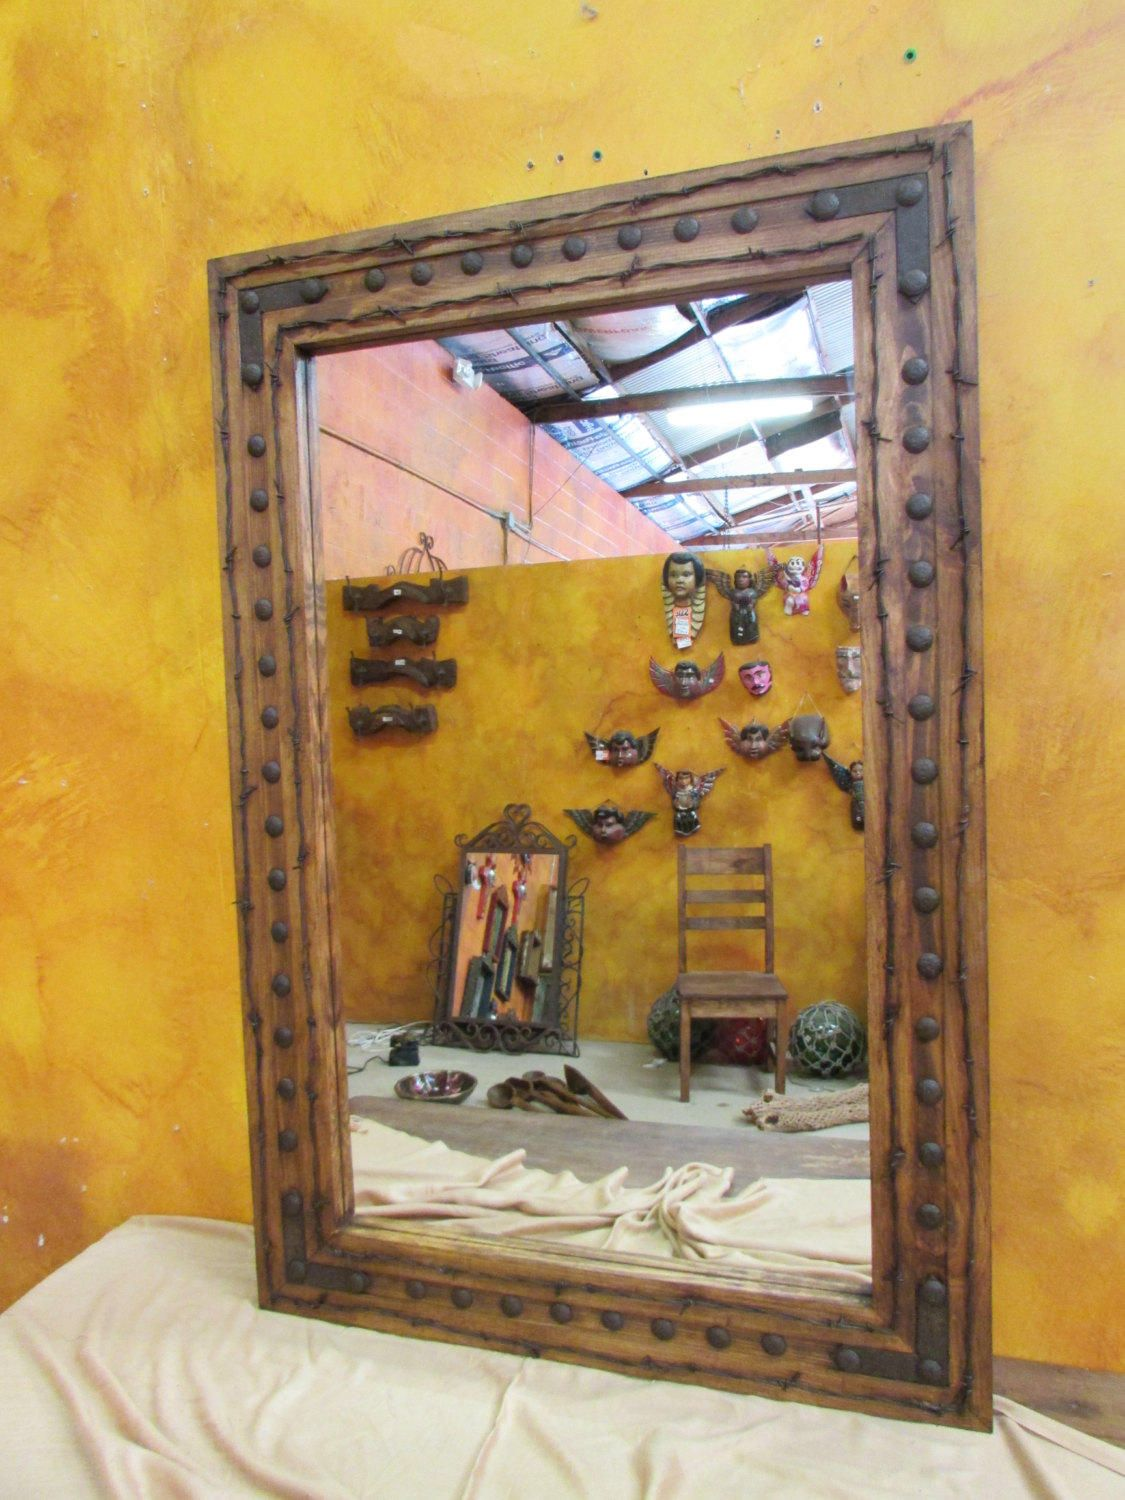 Bathroom Vanity Mirror-Rancho Adobe Rustic Mirror-24x30  Inches-Handmade-Barbed Wire